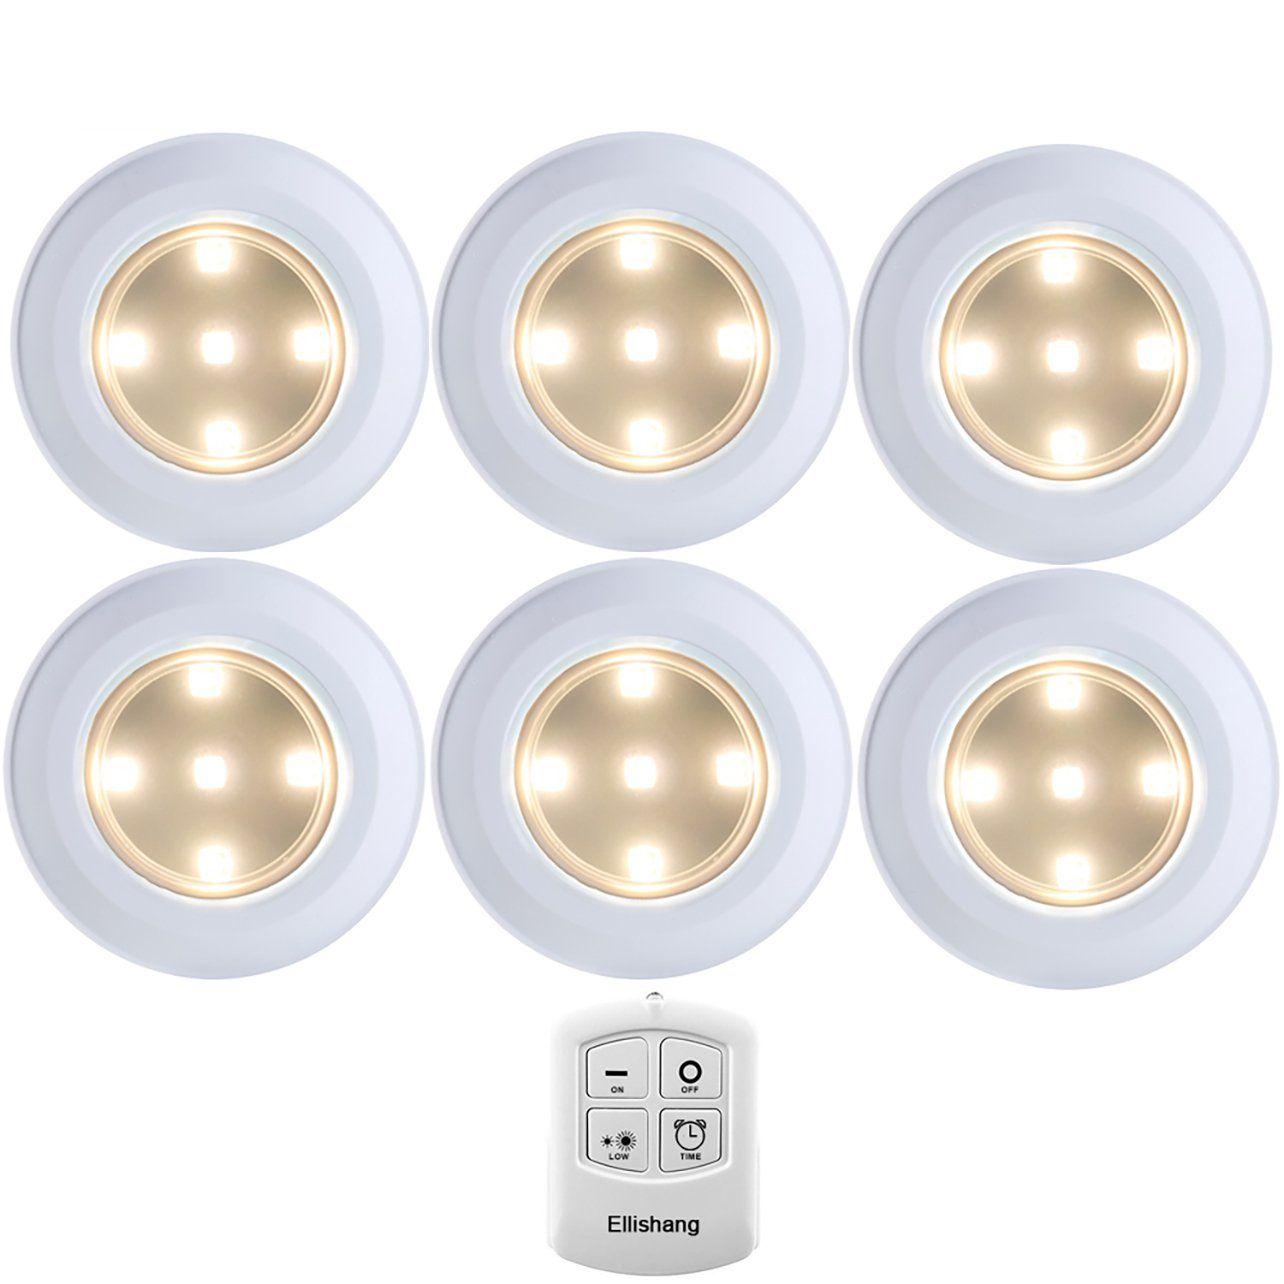 Puck Lights With Remote Control Ellishang 6 Pack Led Tap Battery Ed Wireless